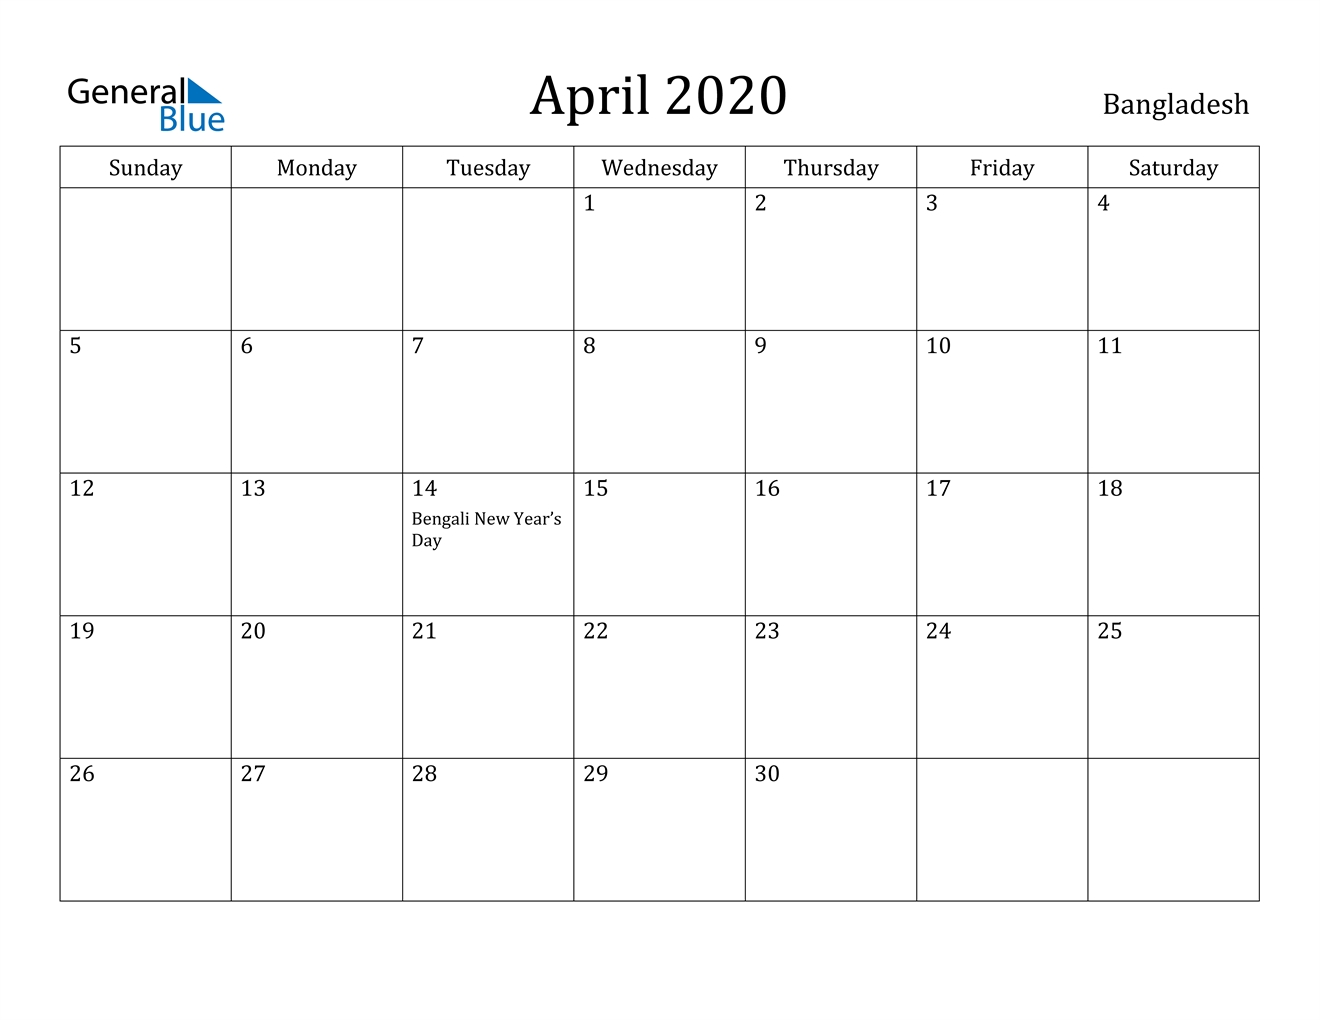 April 2020 Calendar - Bangladesh regarding 2020 Year Calendar Printable Free Bangla